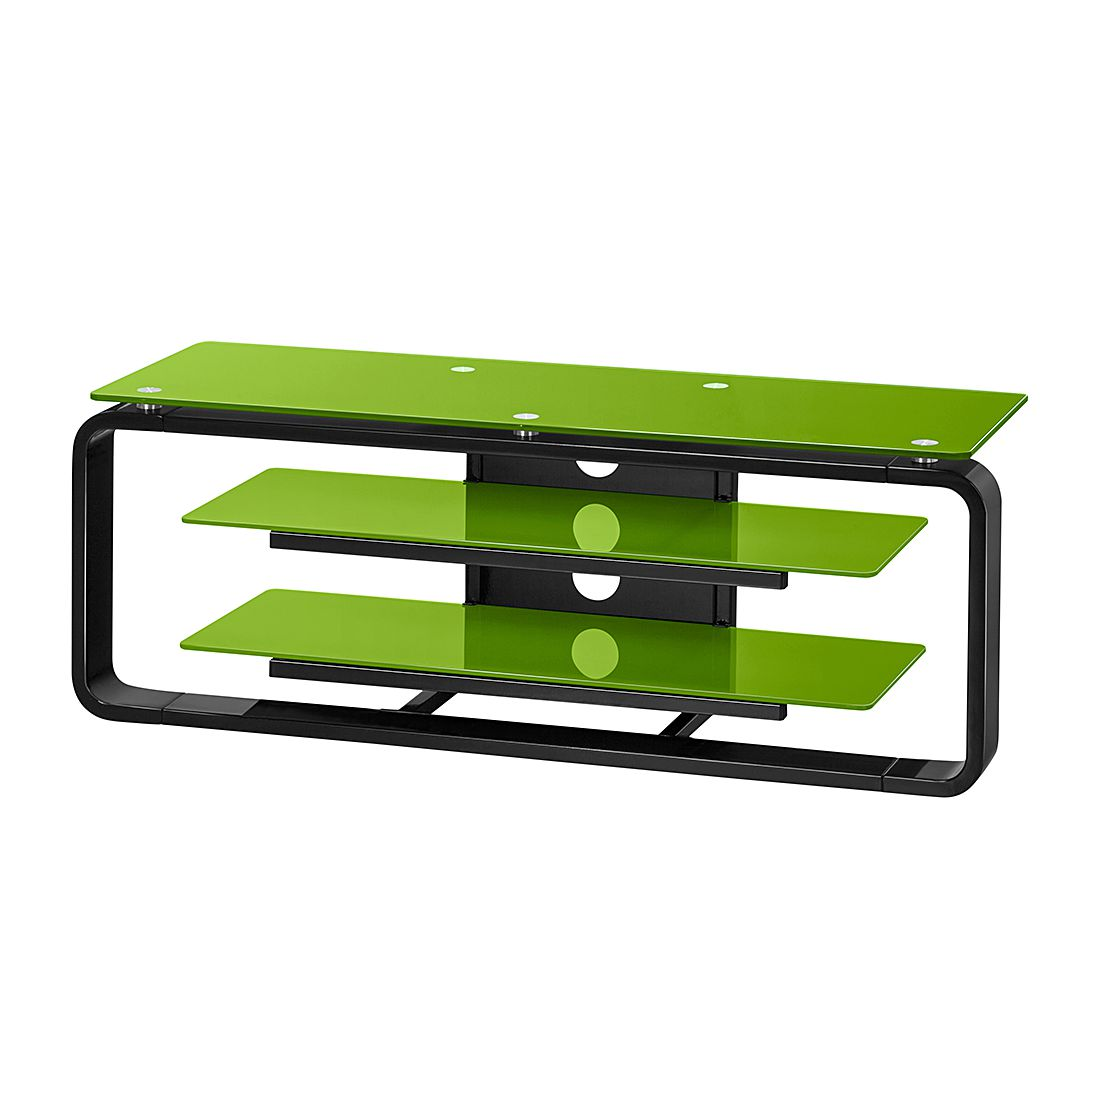 tv rack jared i schwarz glas gr n 110 cm loftscape g nstig online kaufen. Black Bedroom Furniture Sets. Home Design Ideas